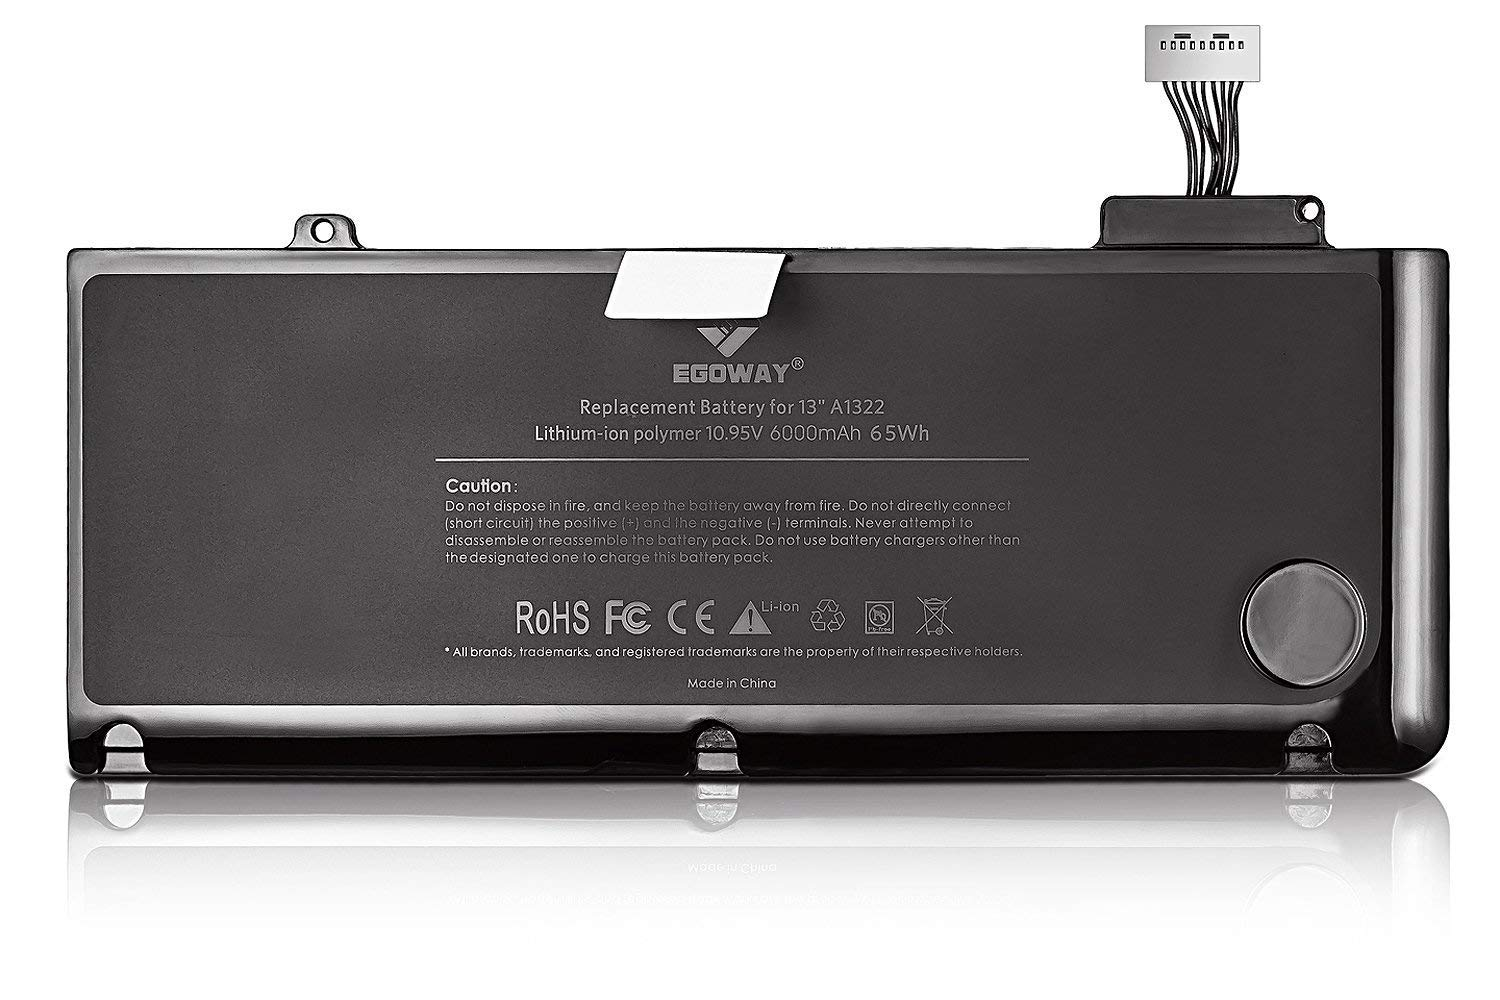 E EGOWAY Laptop Battery (10.95V 6000mAh) Replacement for MacBook Pro 13 Inch A1322 A1278 by E EGOWAY (Image #3)